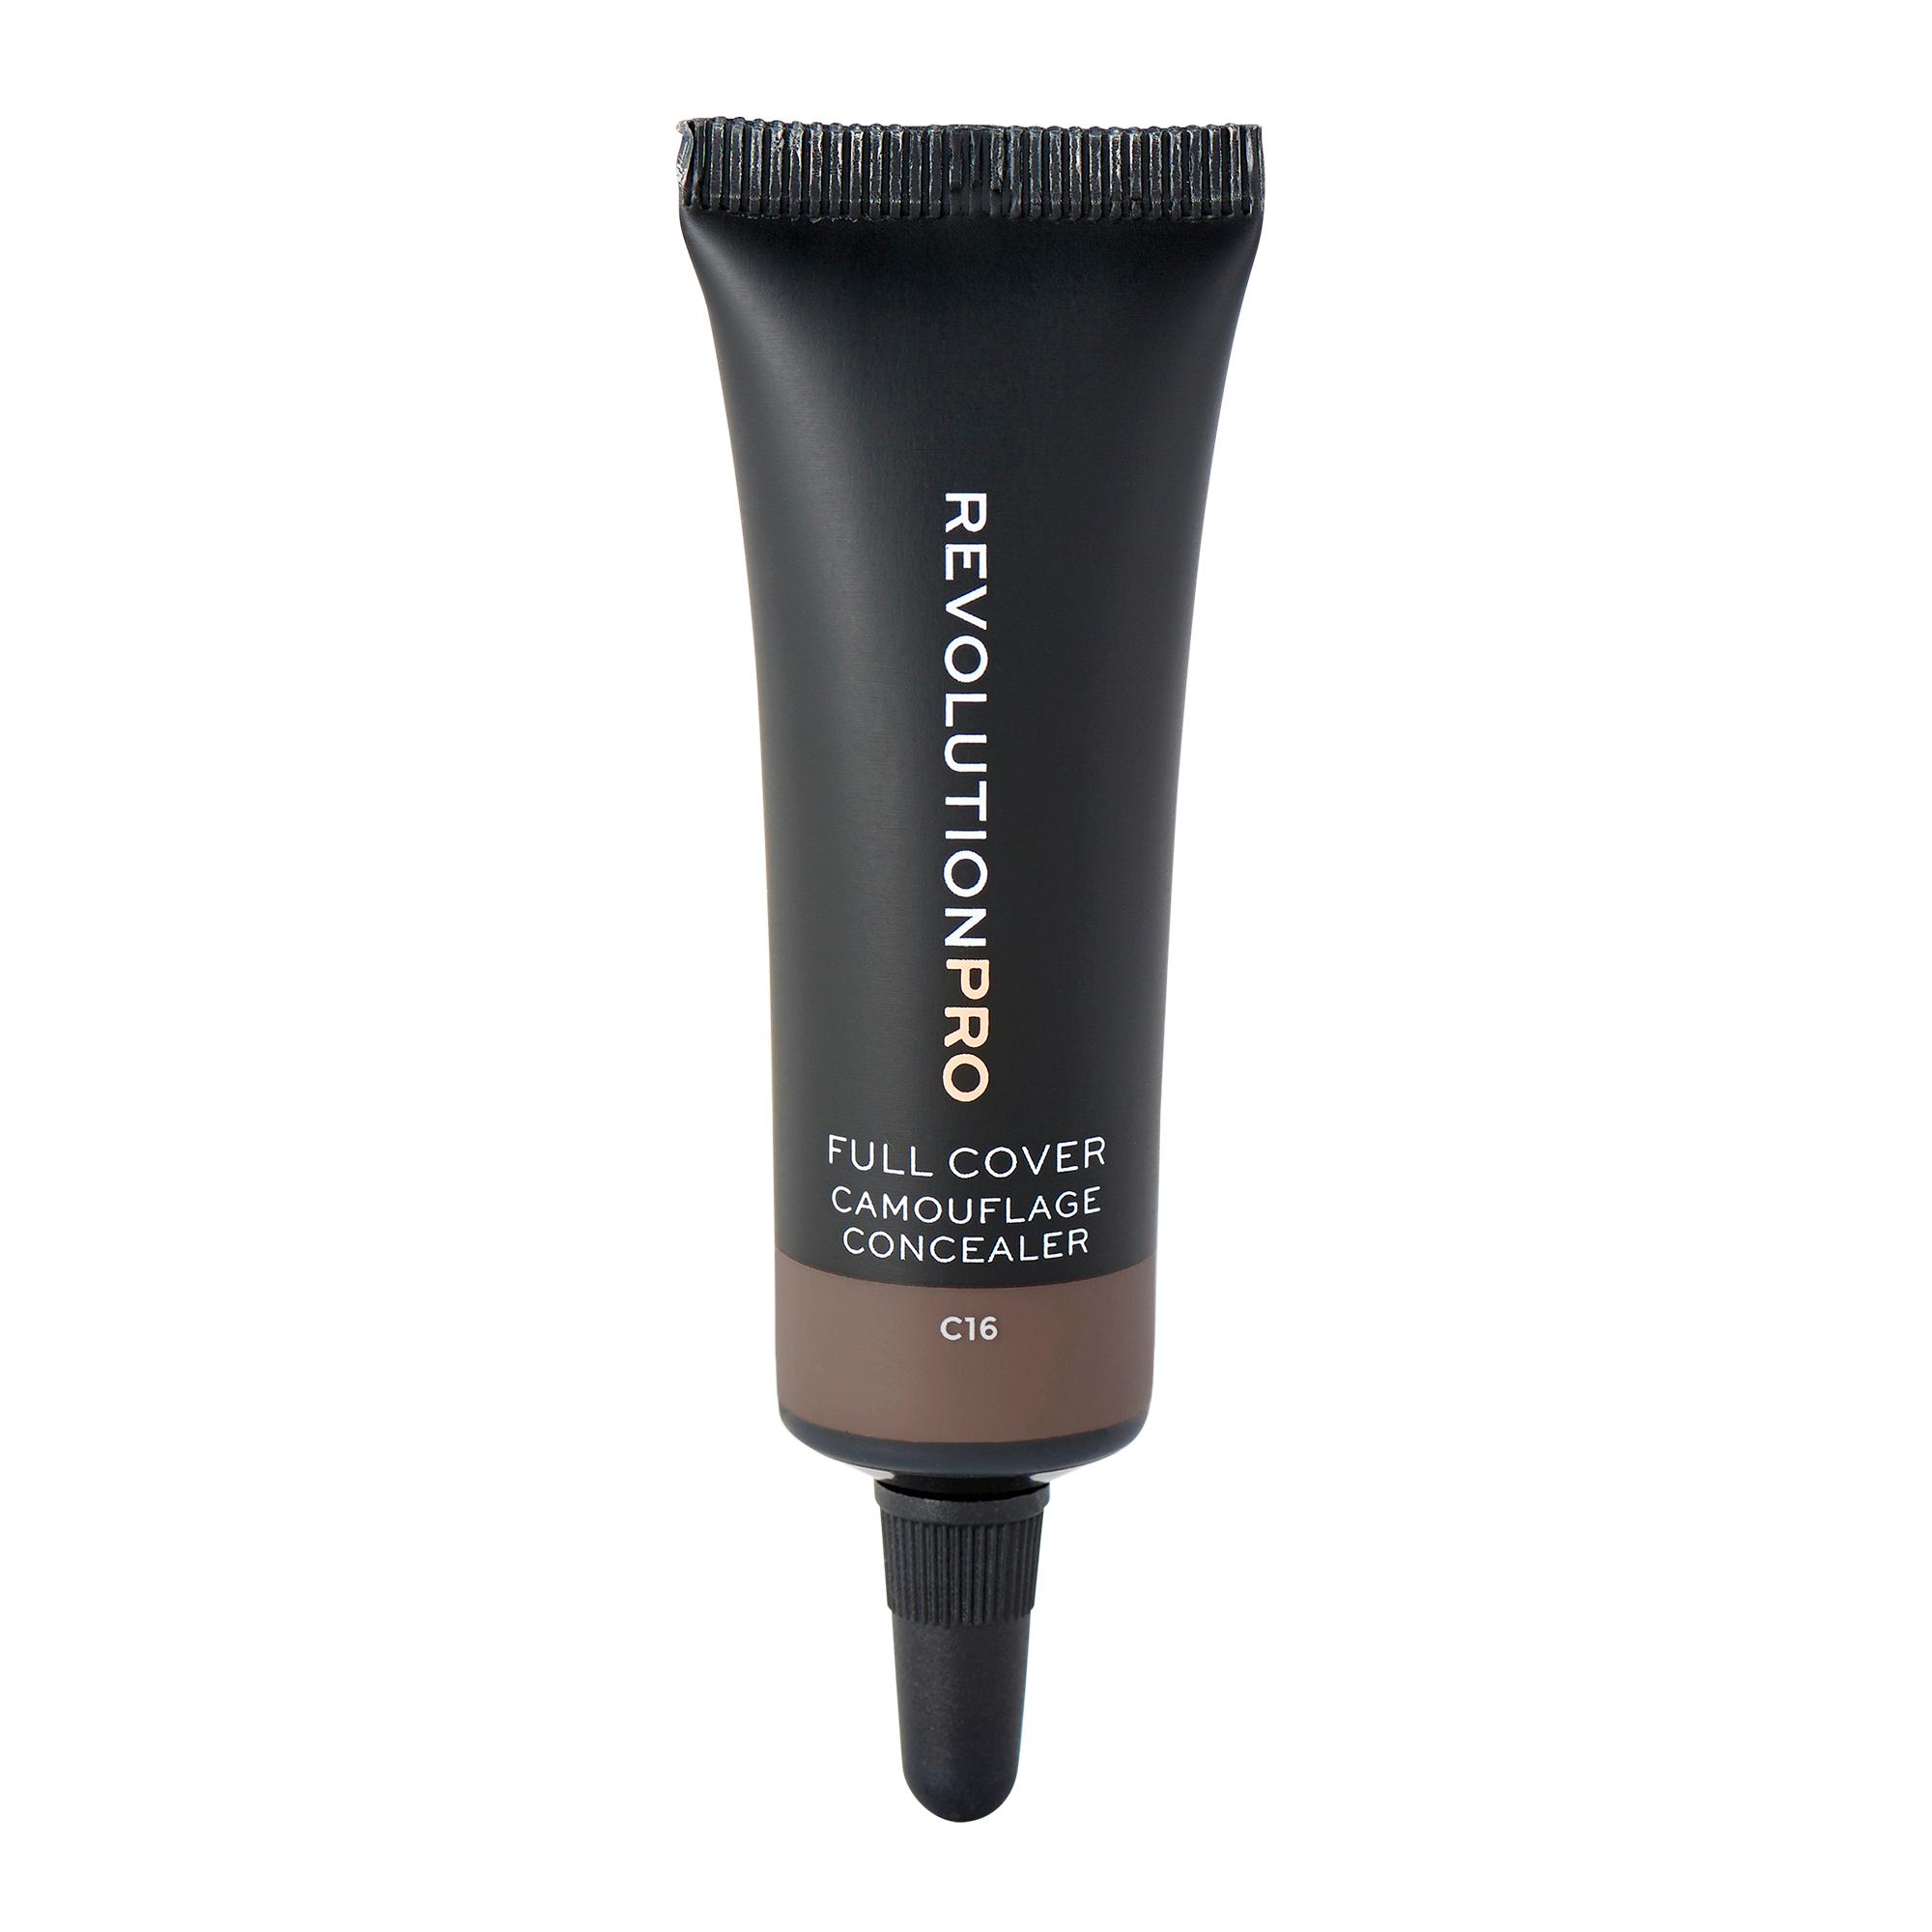 Full Cover Camouflage Concealer C16